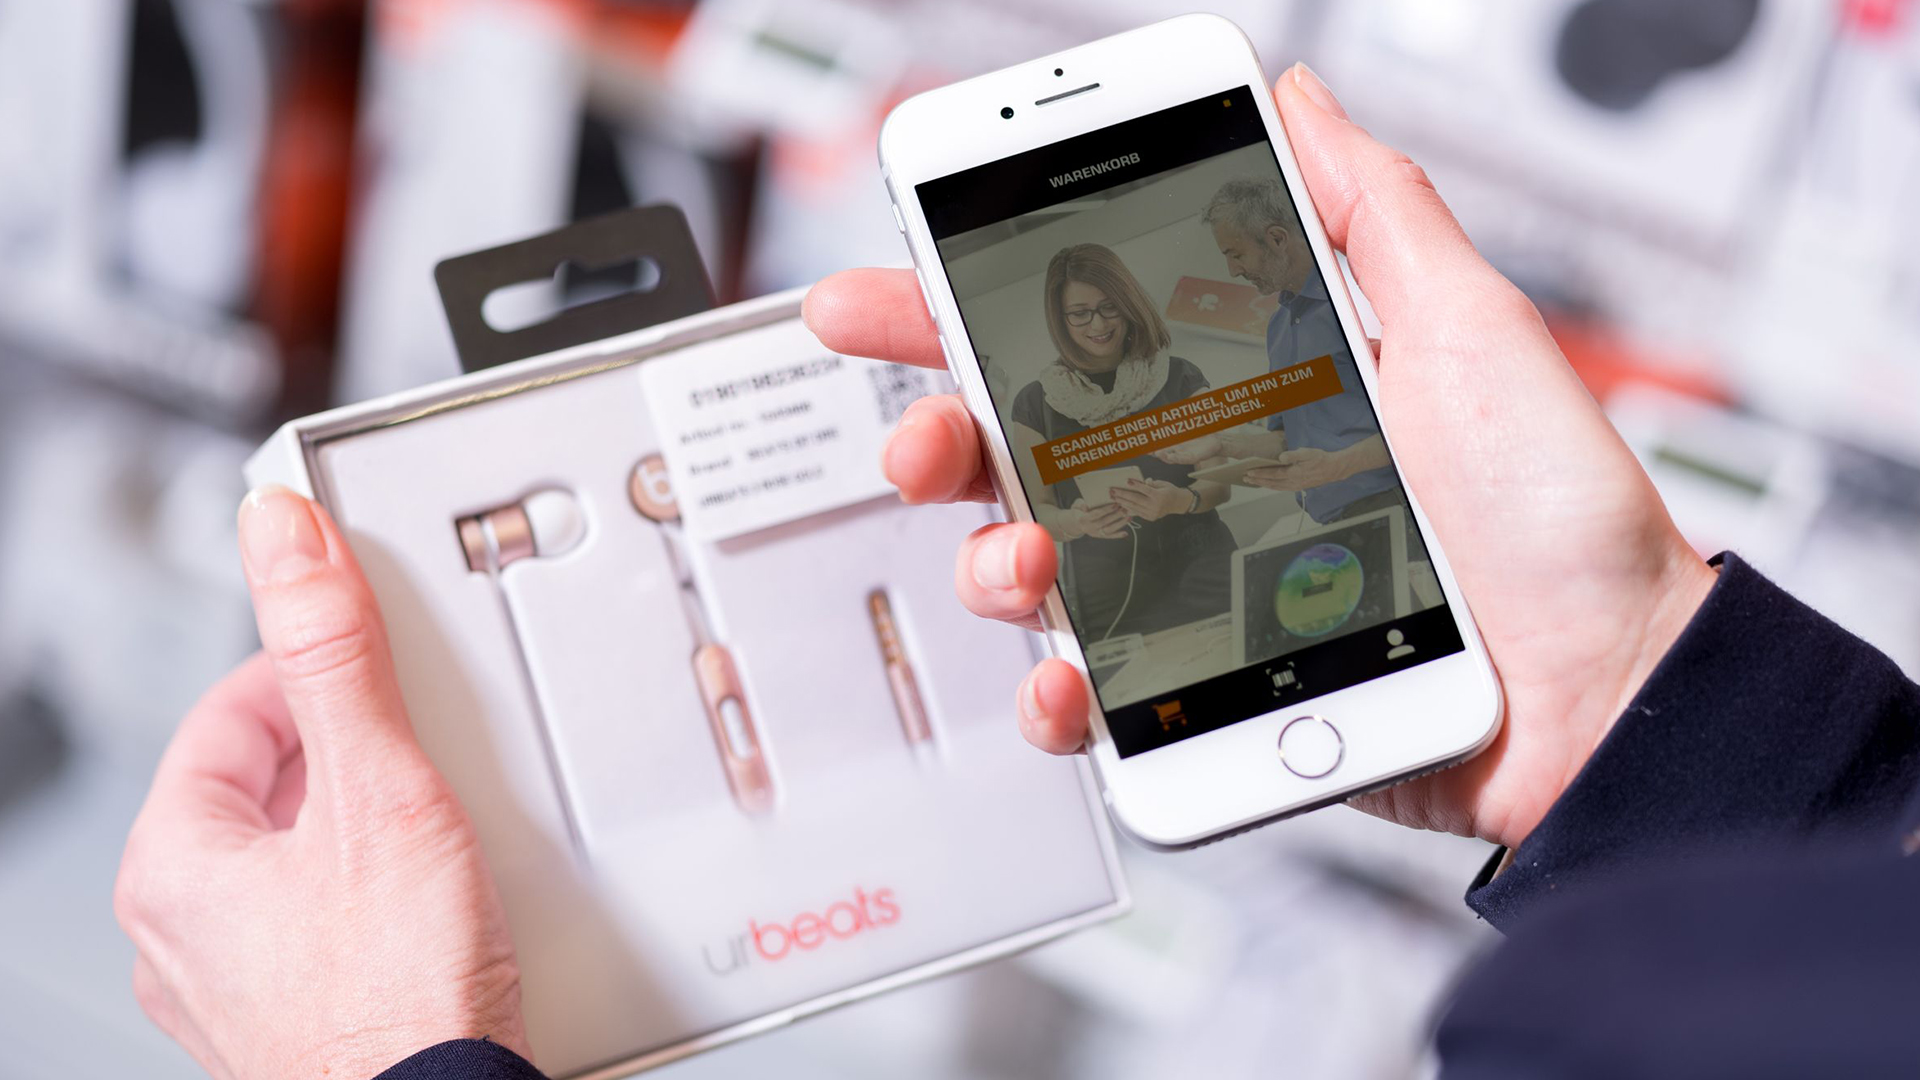 Digital touchpoints in retail